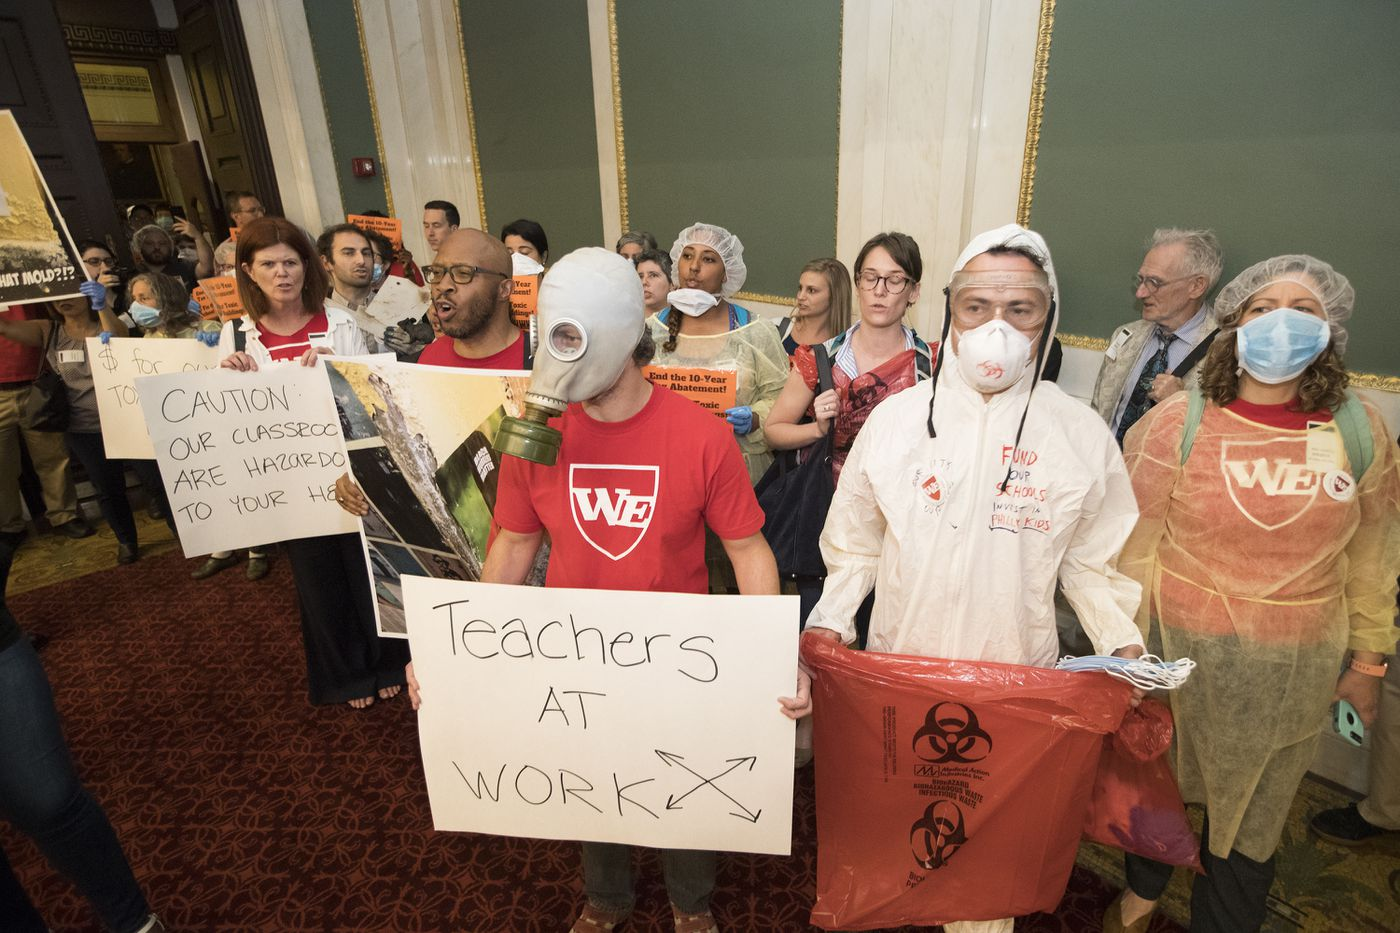 Teachers led by Our City, Our Schools descended on City Council with evidence of the toxic conditions inside their schools on June 5, 2018. They are urging increased funding of schools. They are shown entering Council Chambers.